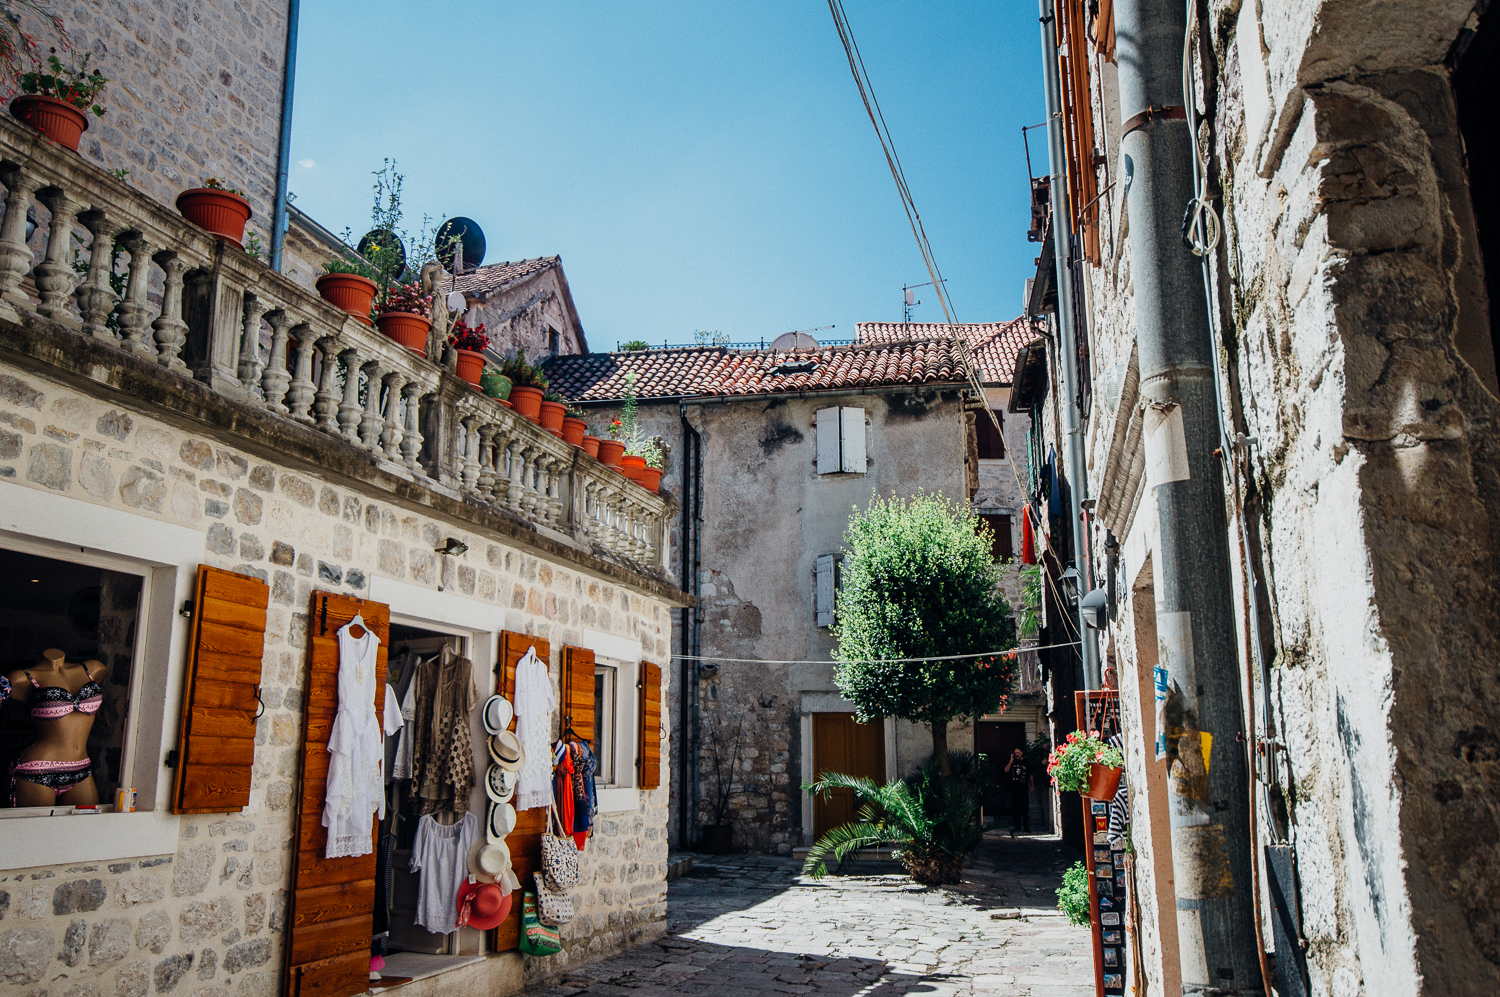 Kotor is a maze of different alleyways, courtyards, houses, and stores.